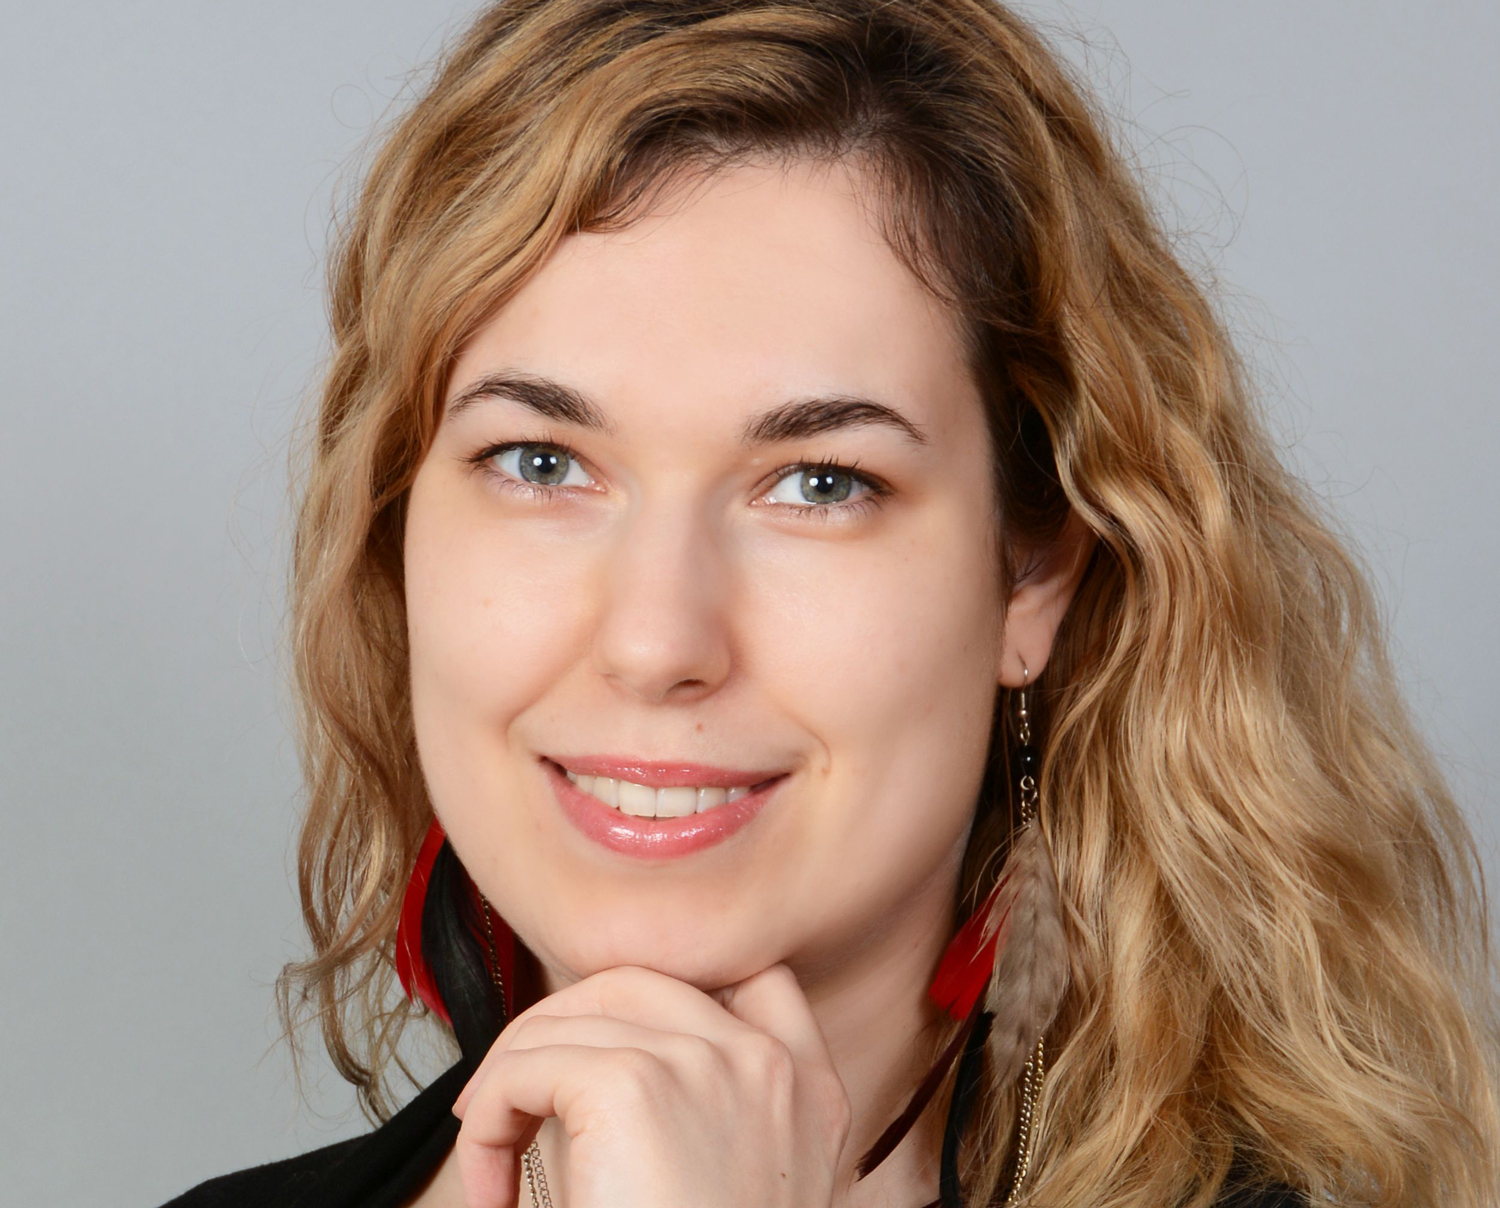 Portrait of Ewa Turska from the Making Waves Kraków office.